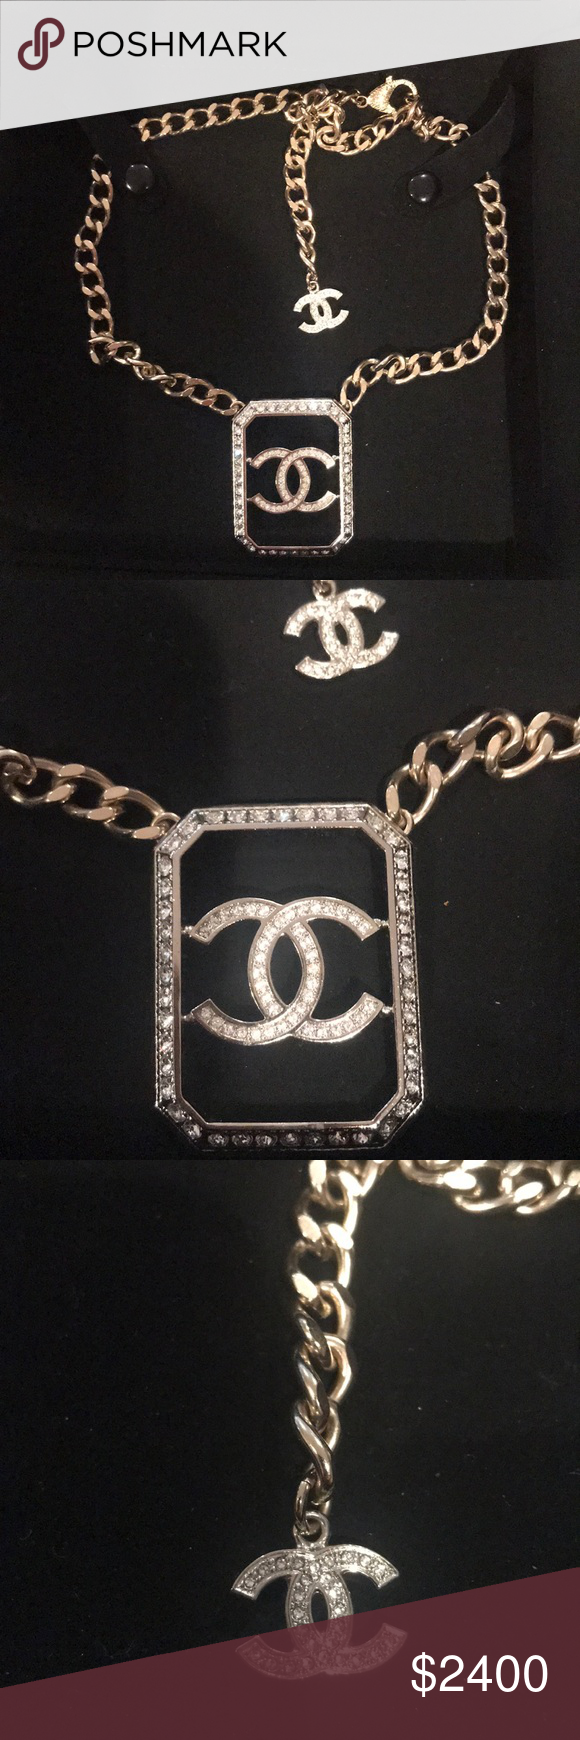 CHANEL AUTHENTIC Logo necklace! CHANEL NECKLACE with large